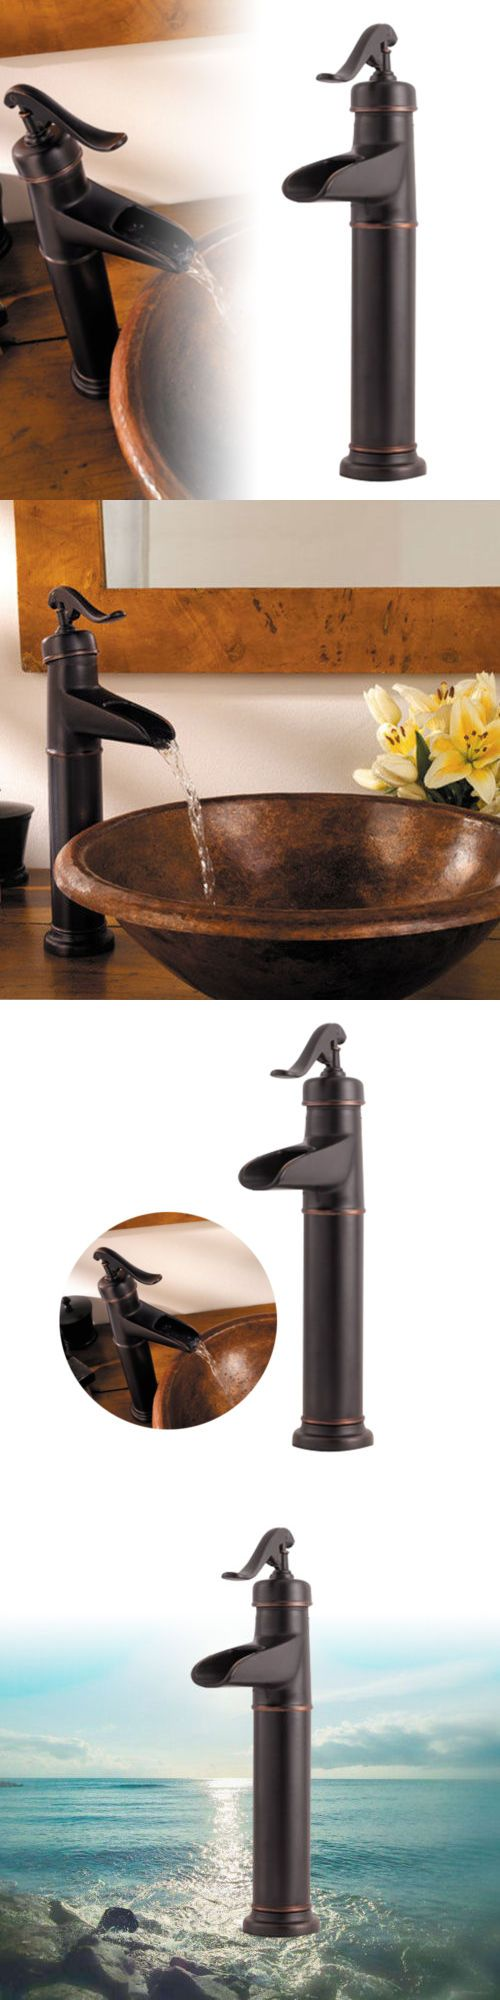 Bathroom sink faucet one hole double handle basin mixer tap ebay - Faucets 42024 Oil Rubbed Bronze Tall Bathroom Basin Faucet Vessel Sink Mixer Deck Mount Taps